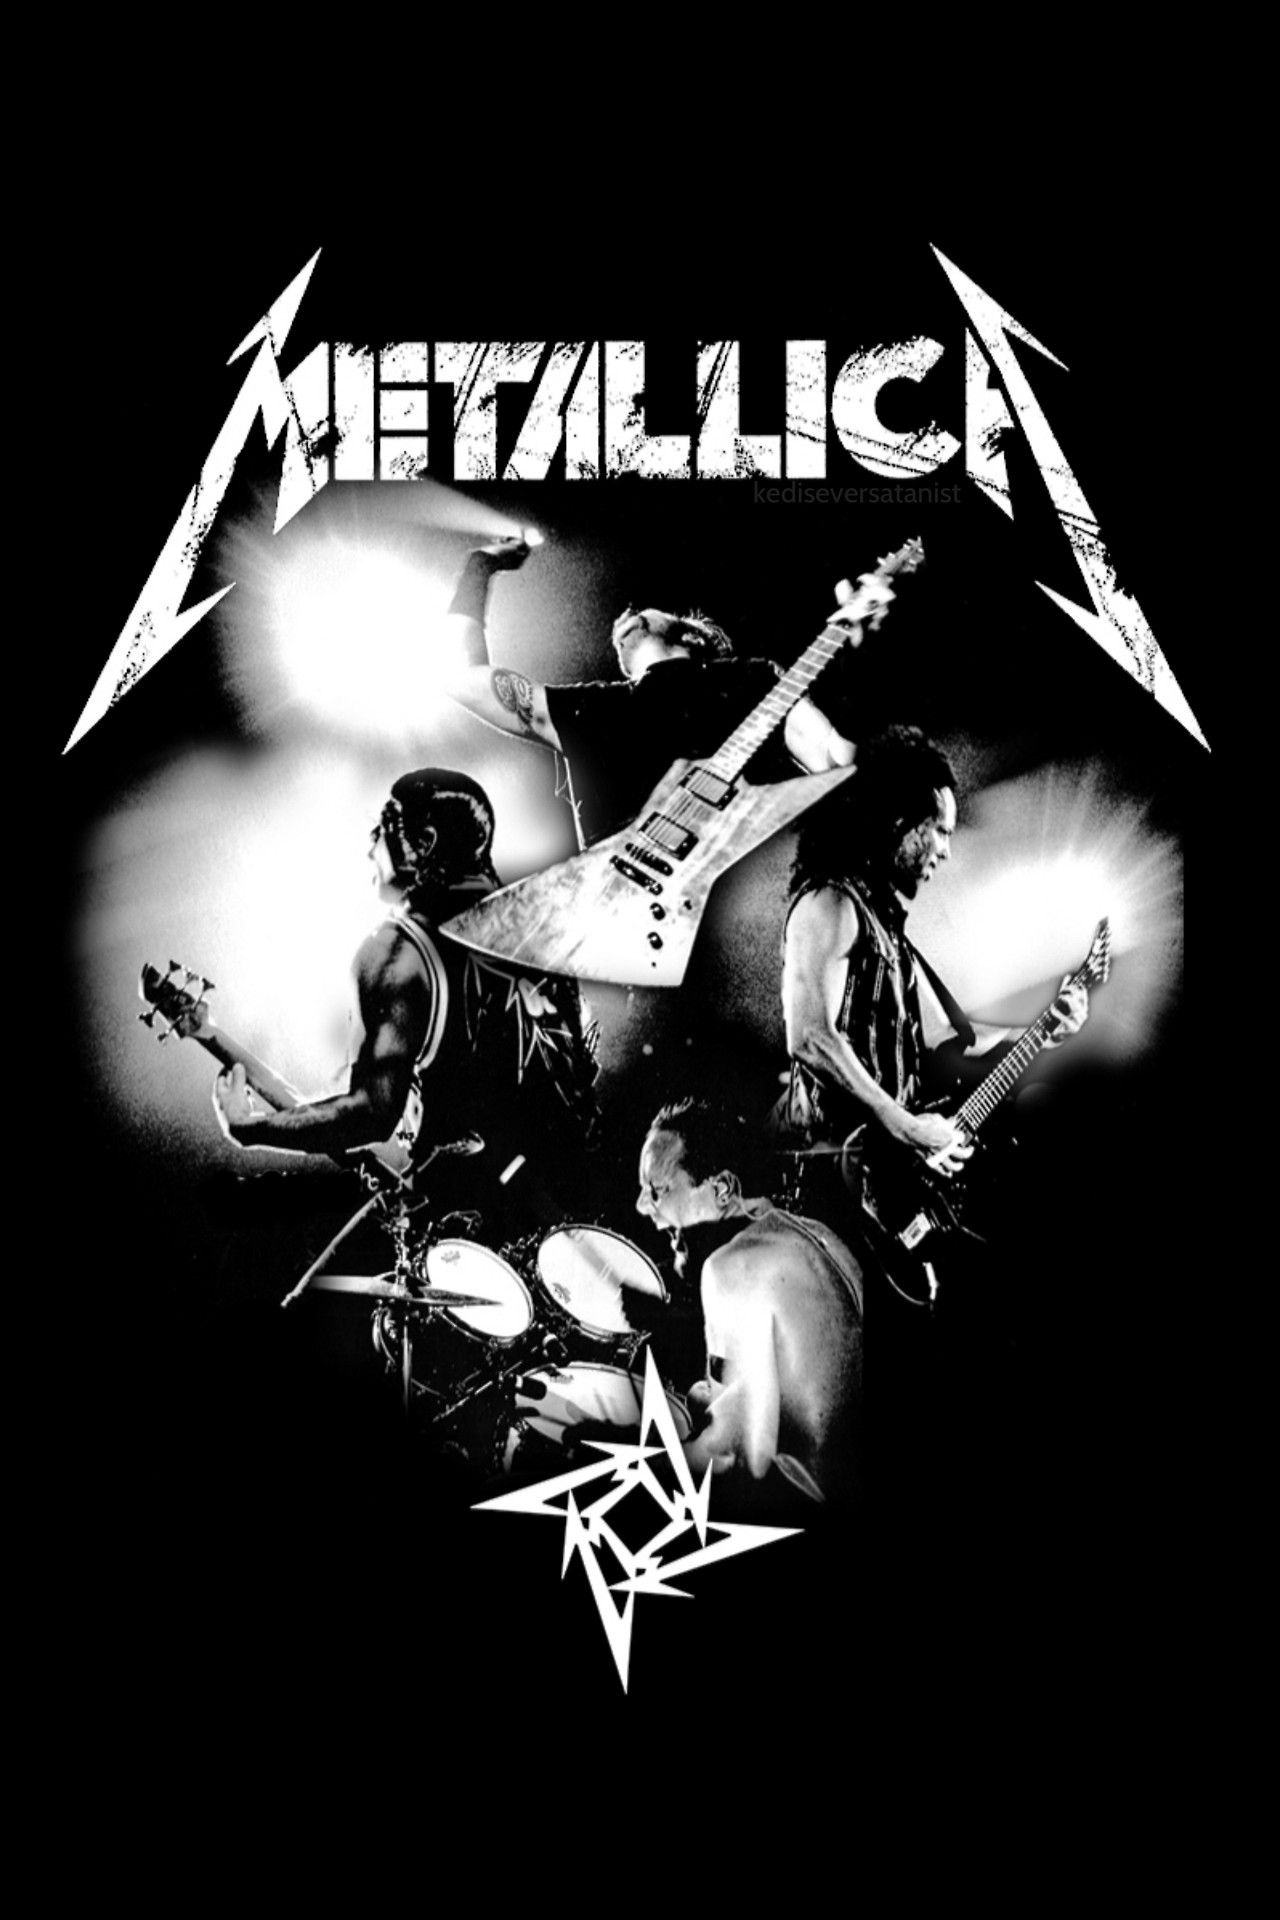 metallica wallpapers hd 69 images. Black Bedroom Furniture Sets. Home Design Ideas